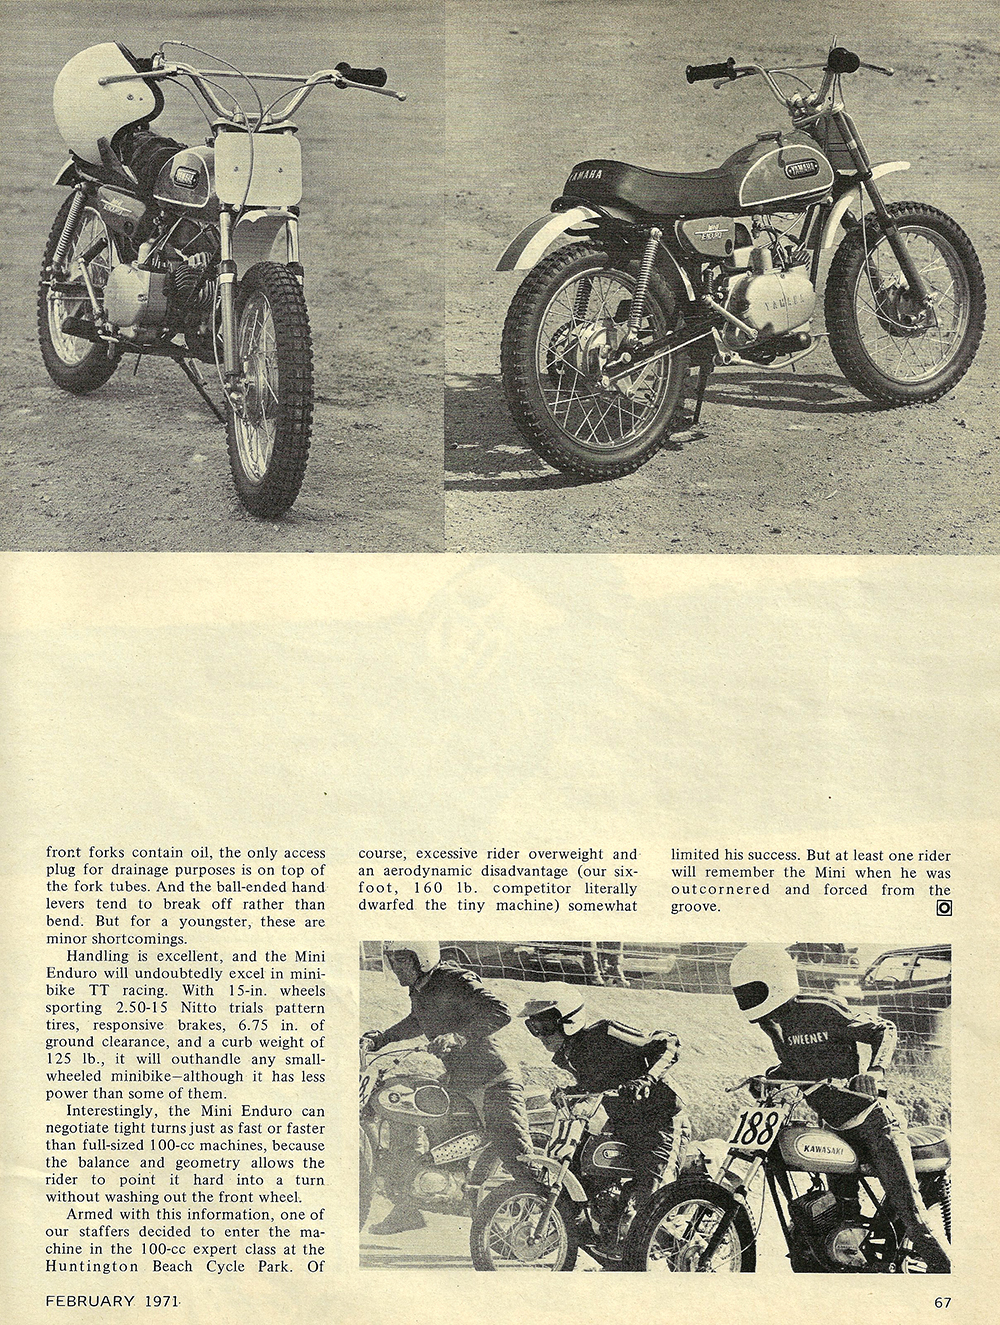 1971 Yamaha Mini Enduro test 02.jpg